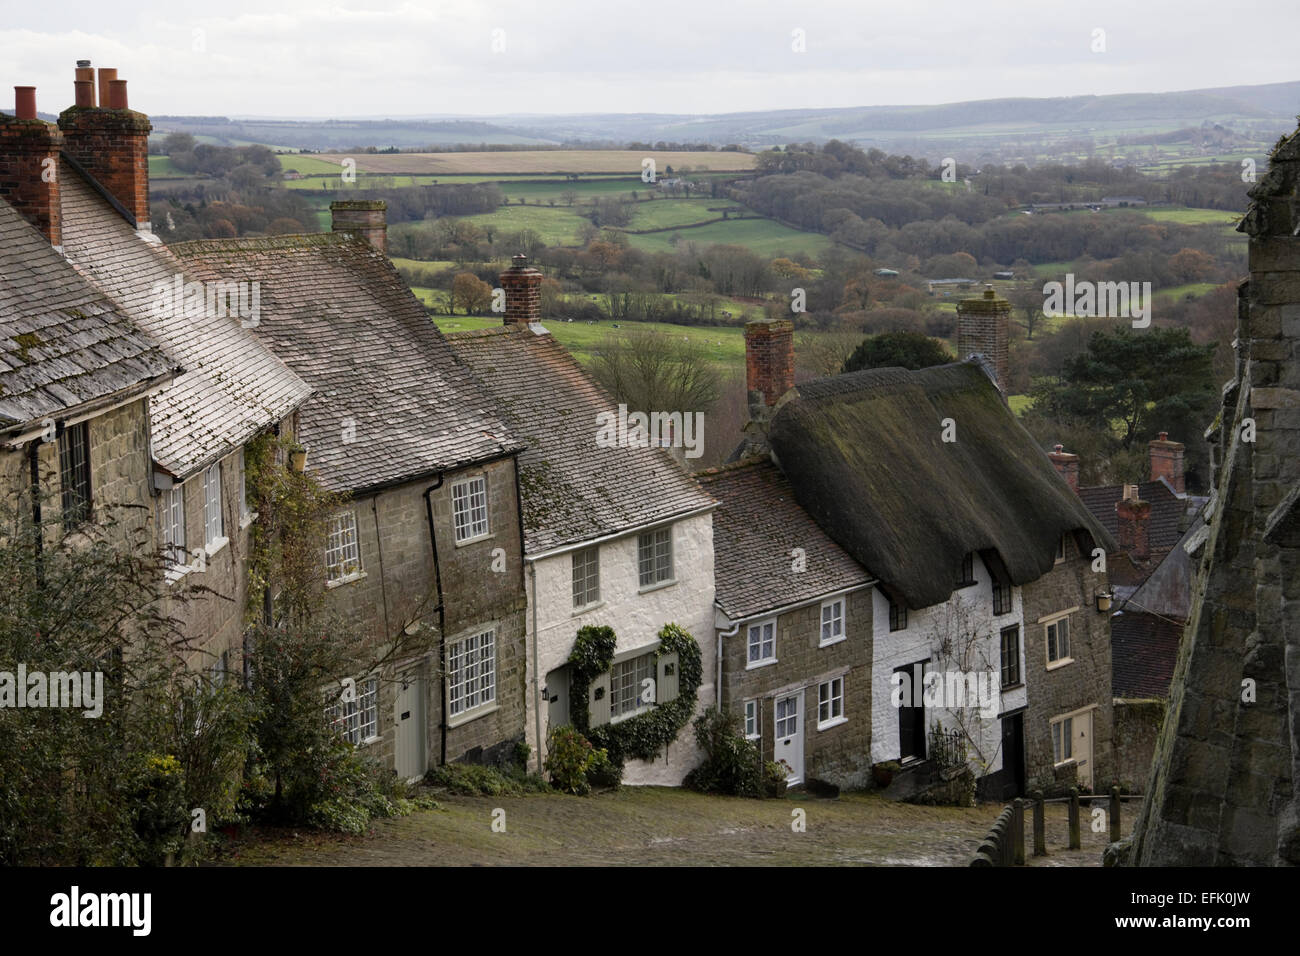 Cobbled street on Gold Hill in Shaftesbury, Dorset, England Stock Photo